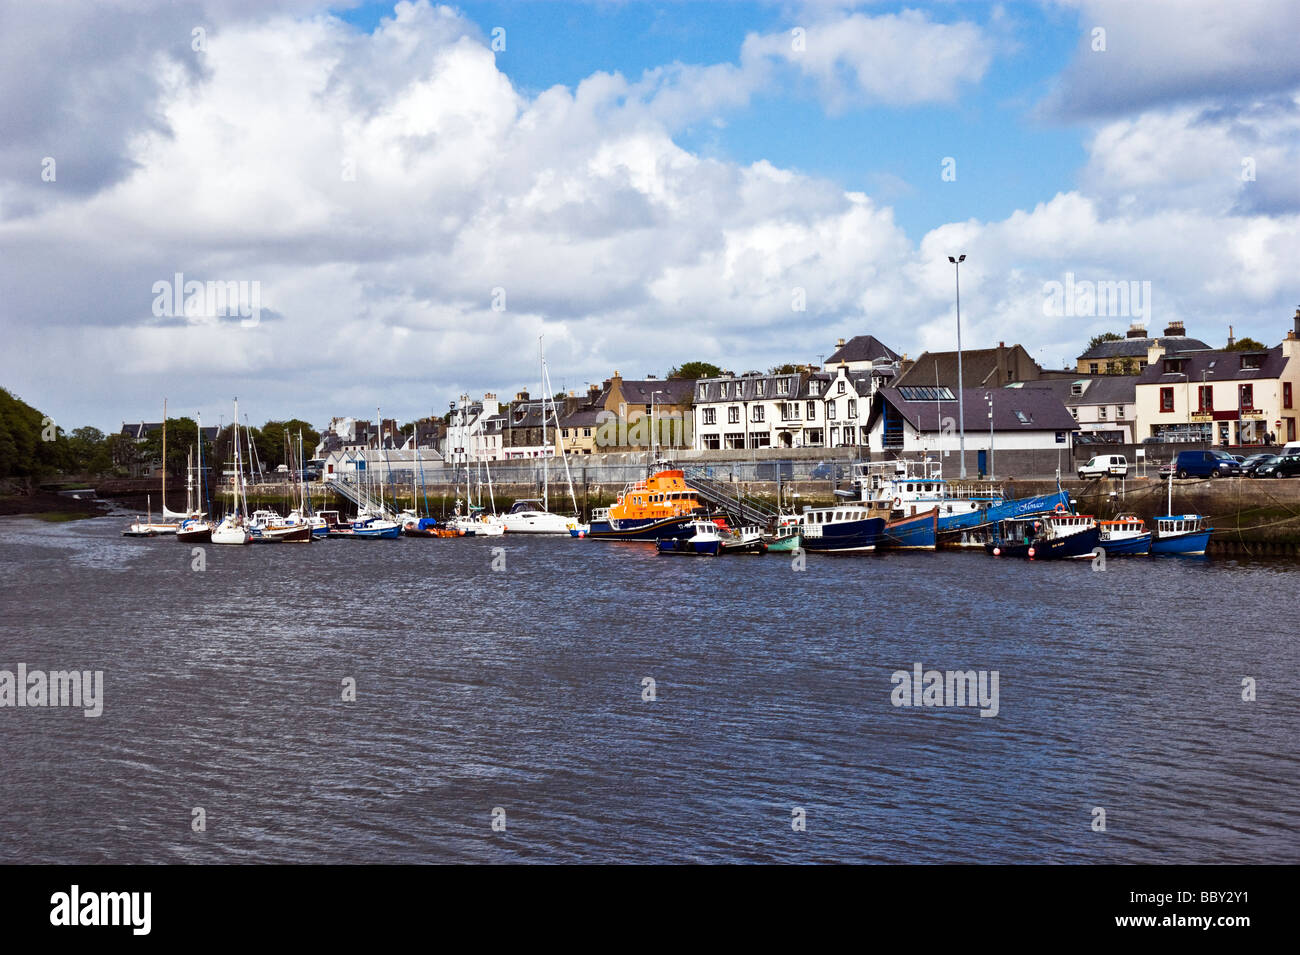 Stornoway inner Harbour Stornoway on the Isle of Lewis Outer Hebrides Scotland with a variety of vessels moored - Stock Image